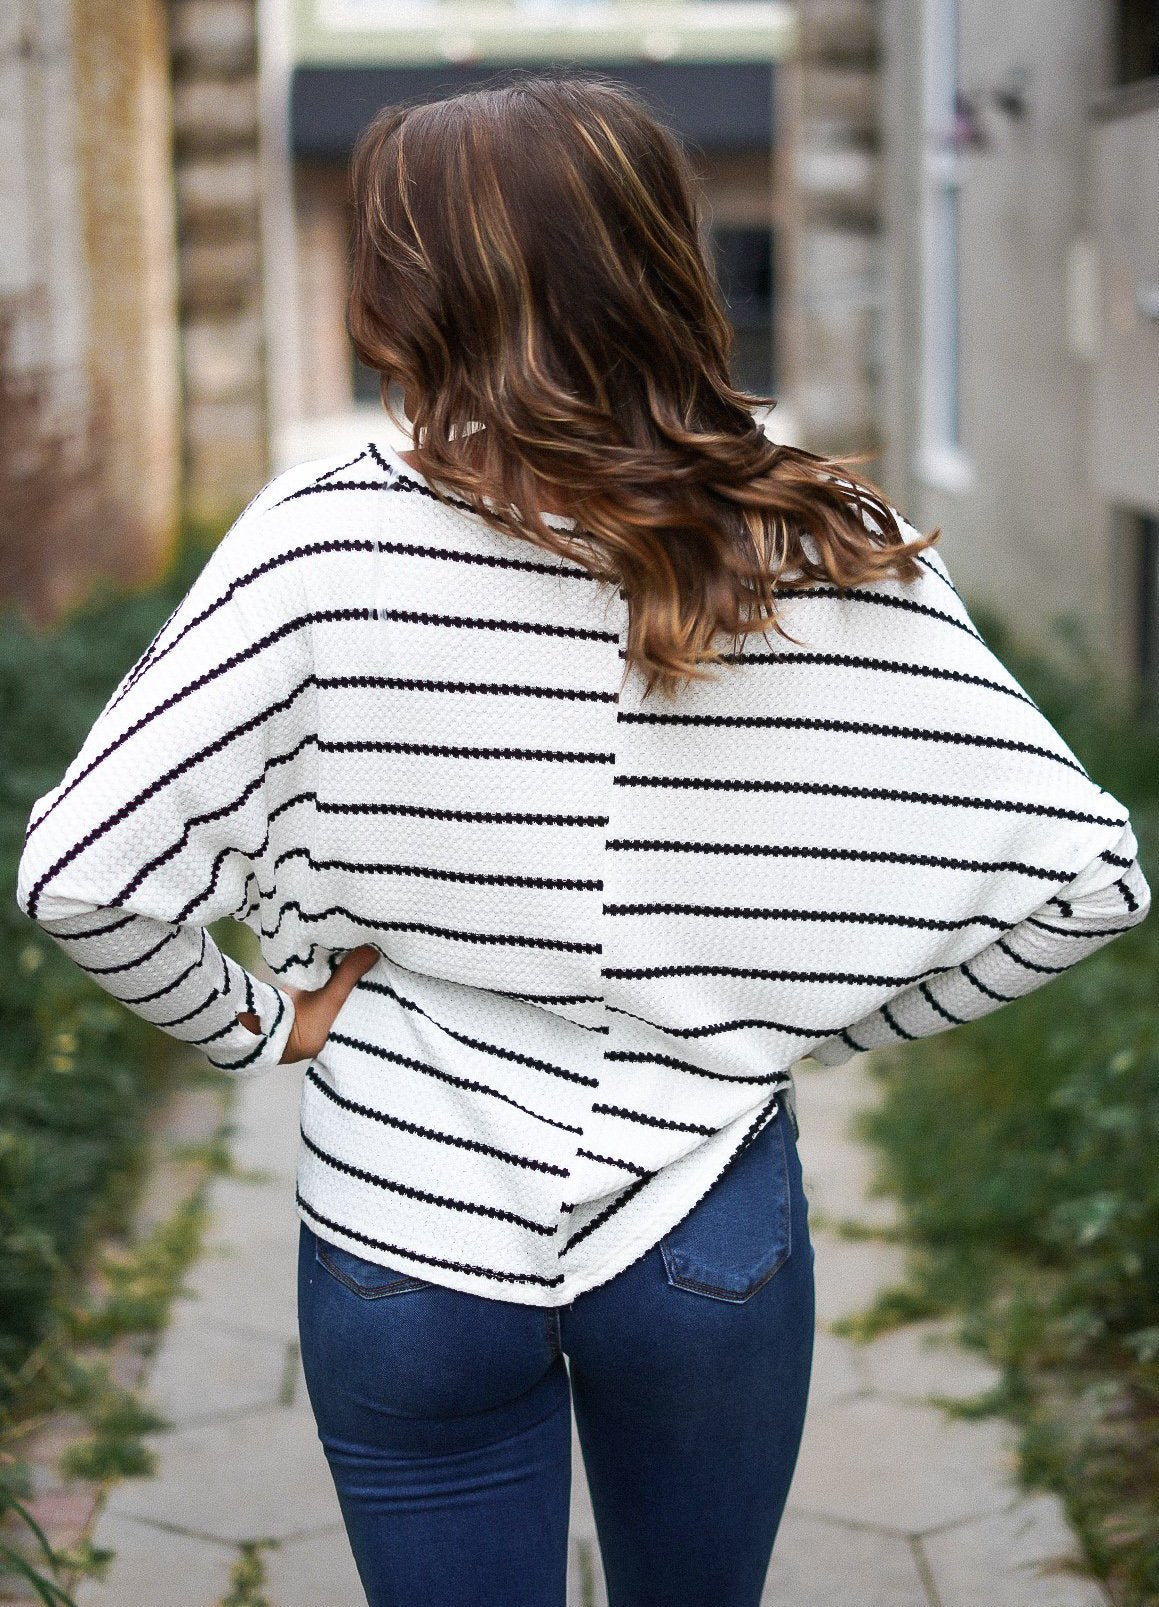 Something Like This Striped Top